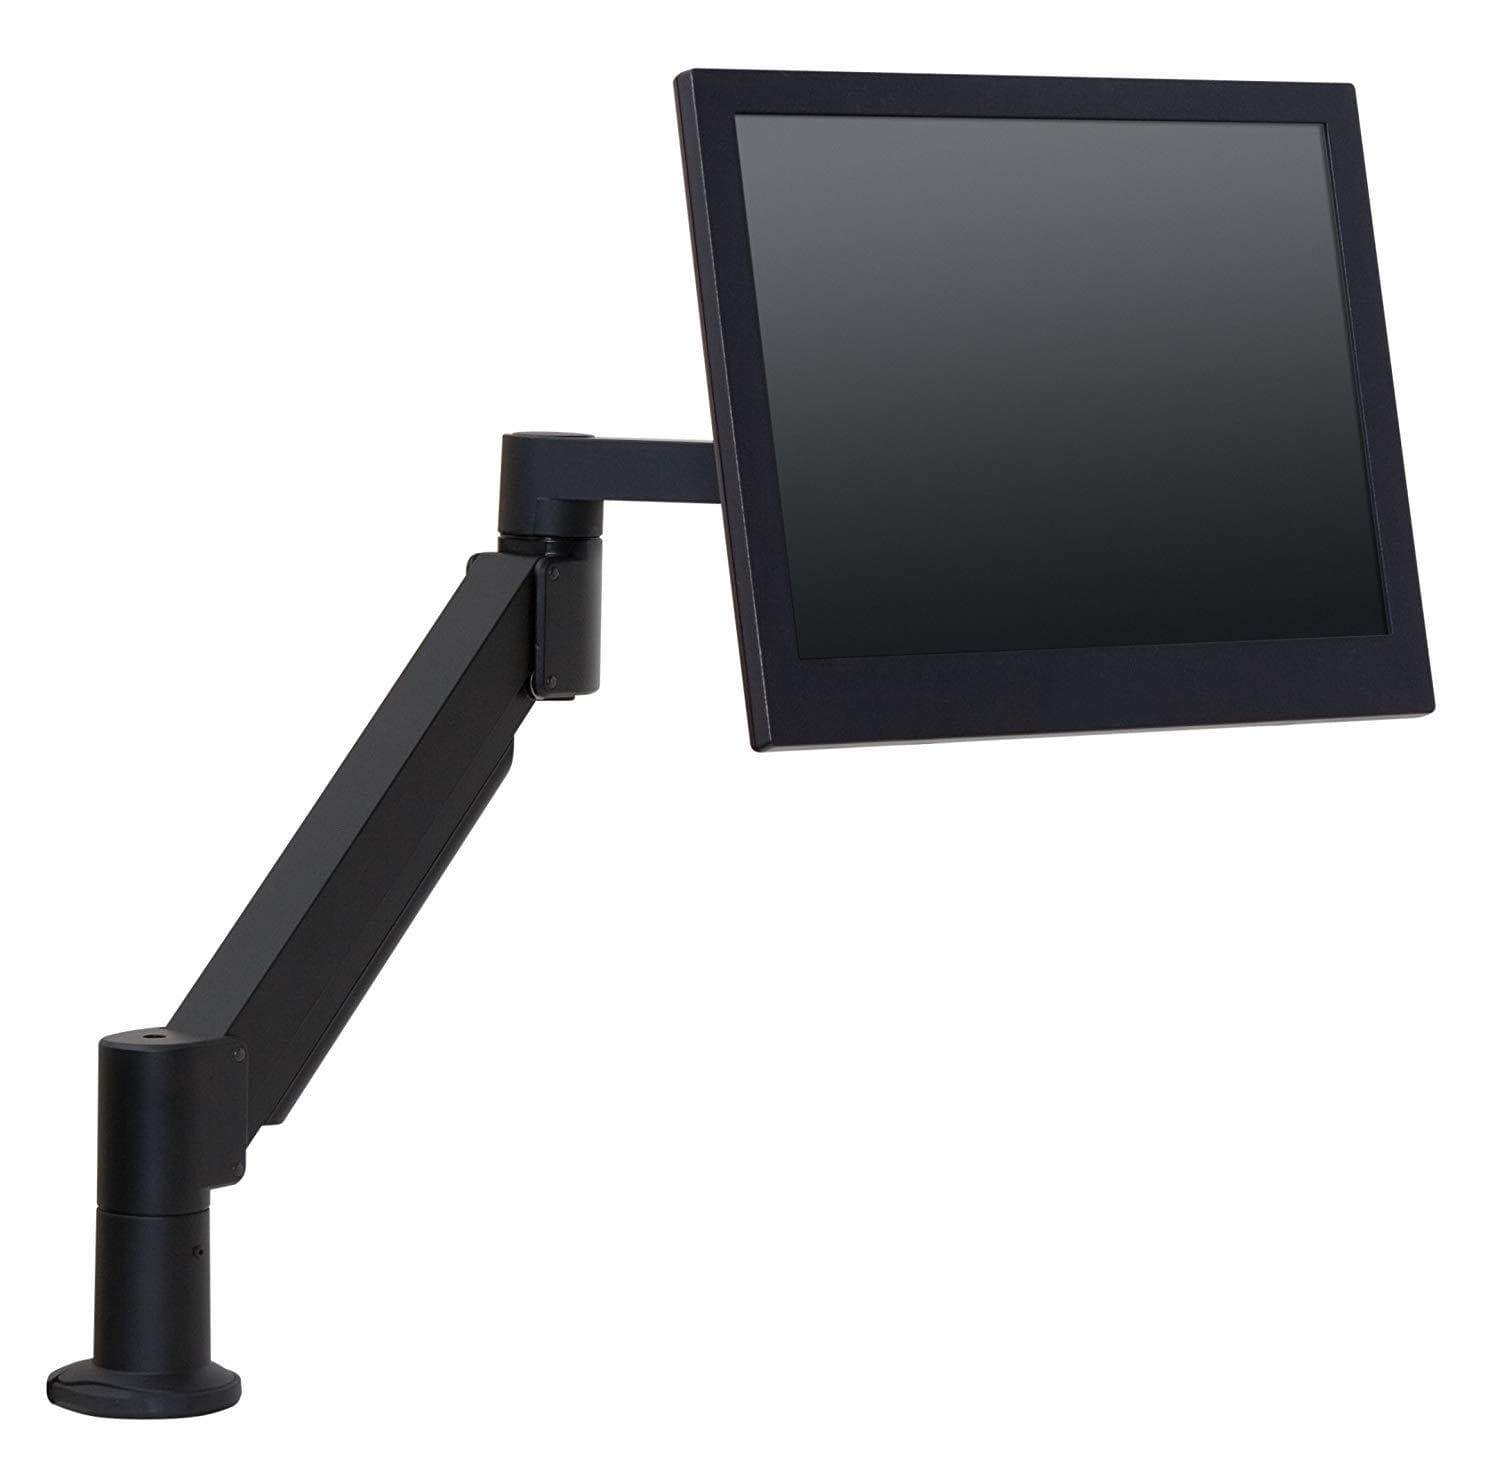 Innovative Monitor Arm Jestik Innovative 7Flex 24-Inch Single Monitor Arm